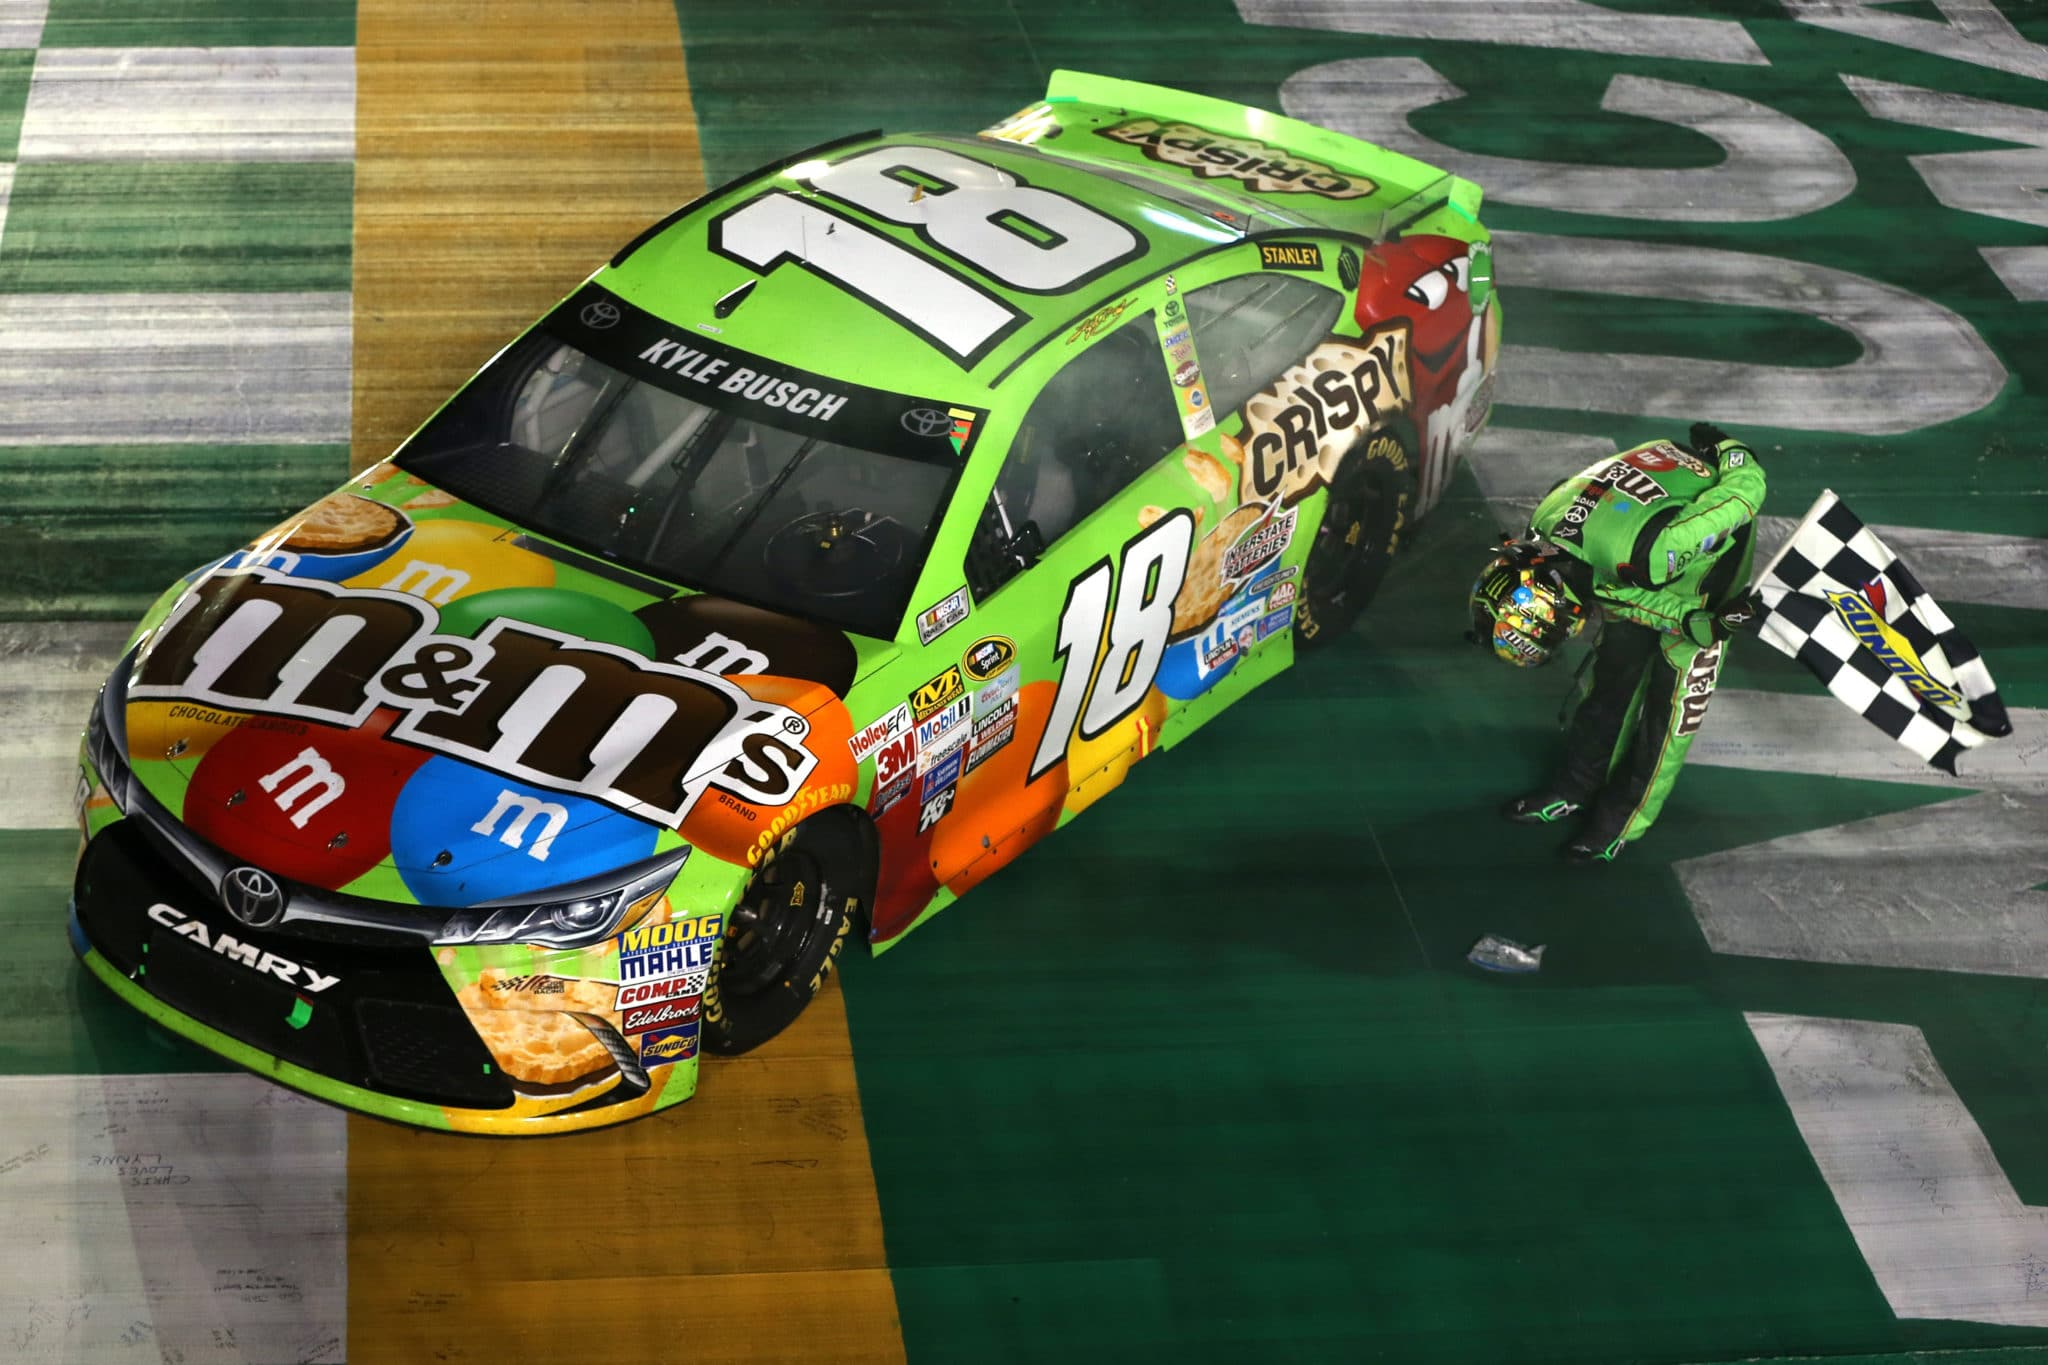 2015 Kentucky CUP Kyle Busch bow credit NASCAR via Getty Images